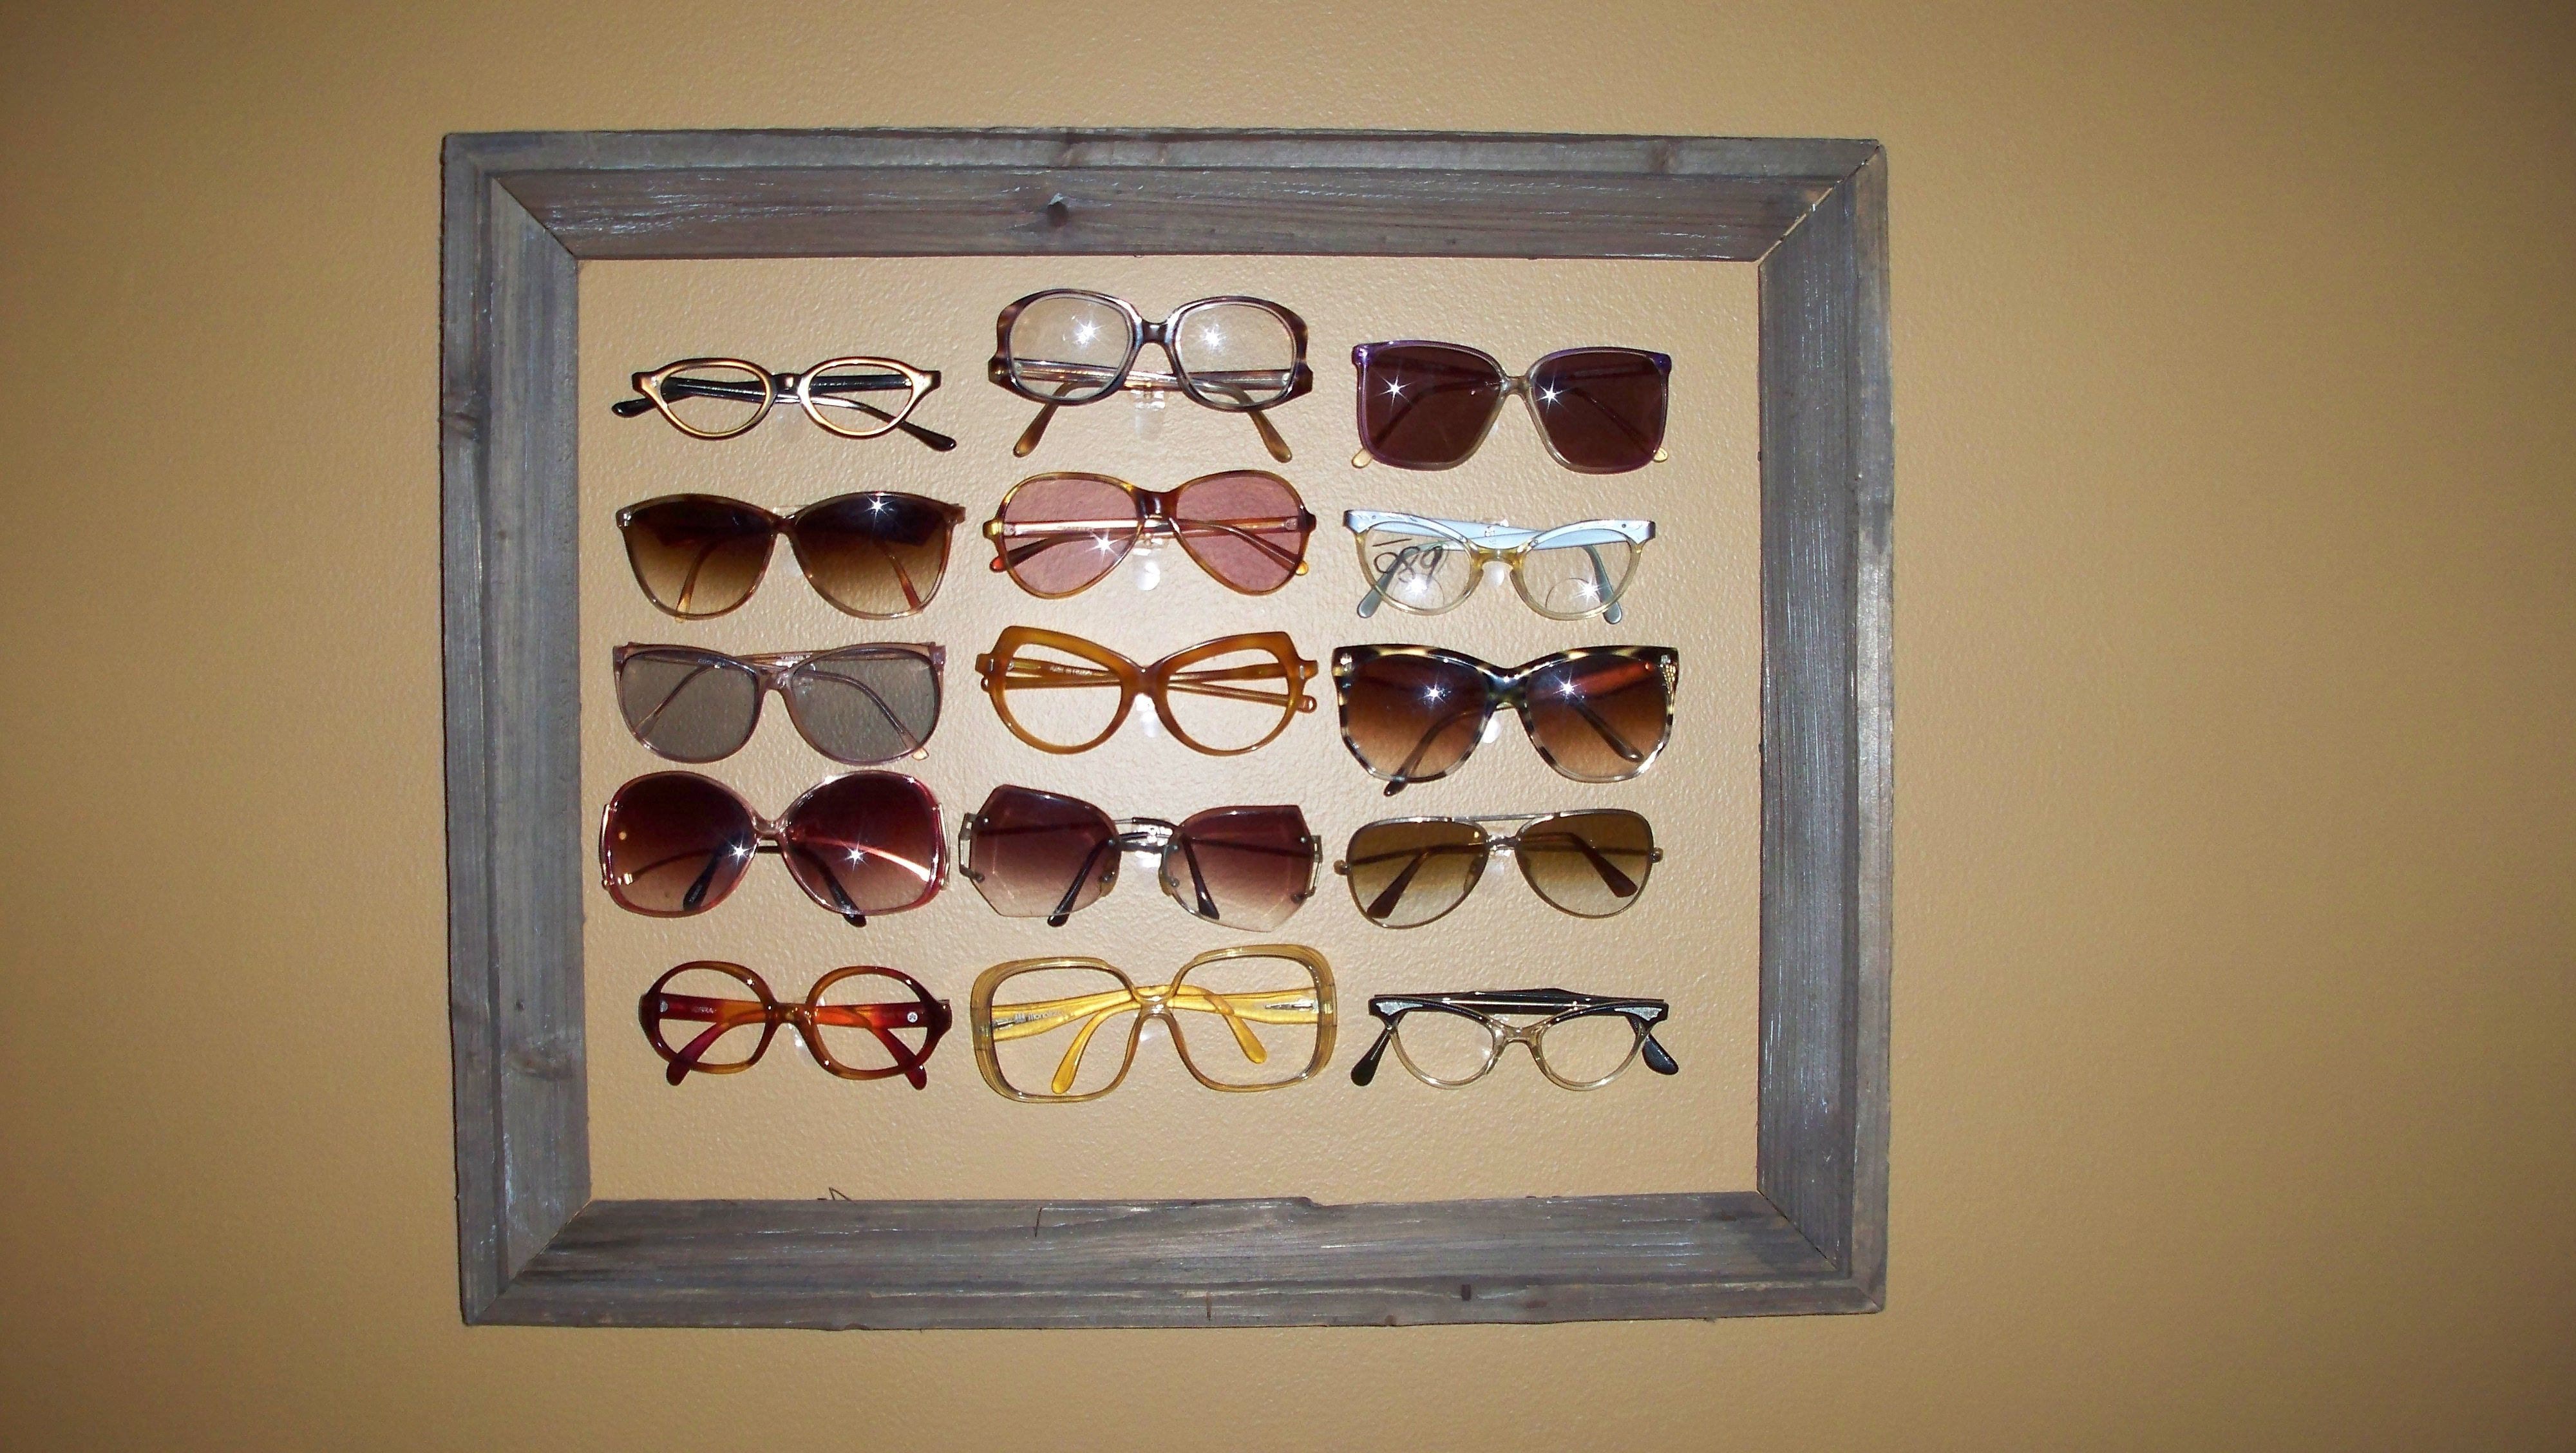 22eb1d234b I have a little collection of vintage eyeglasses and needed a place to  display them. I made up this eyeglass frame by using 3m (small clear)  attachments and ...